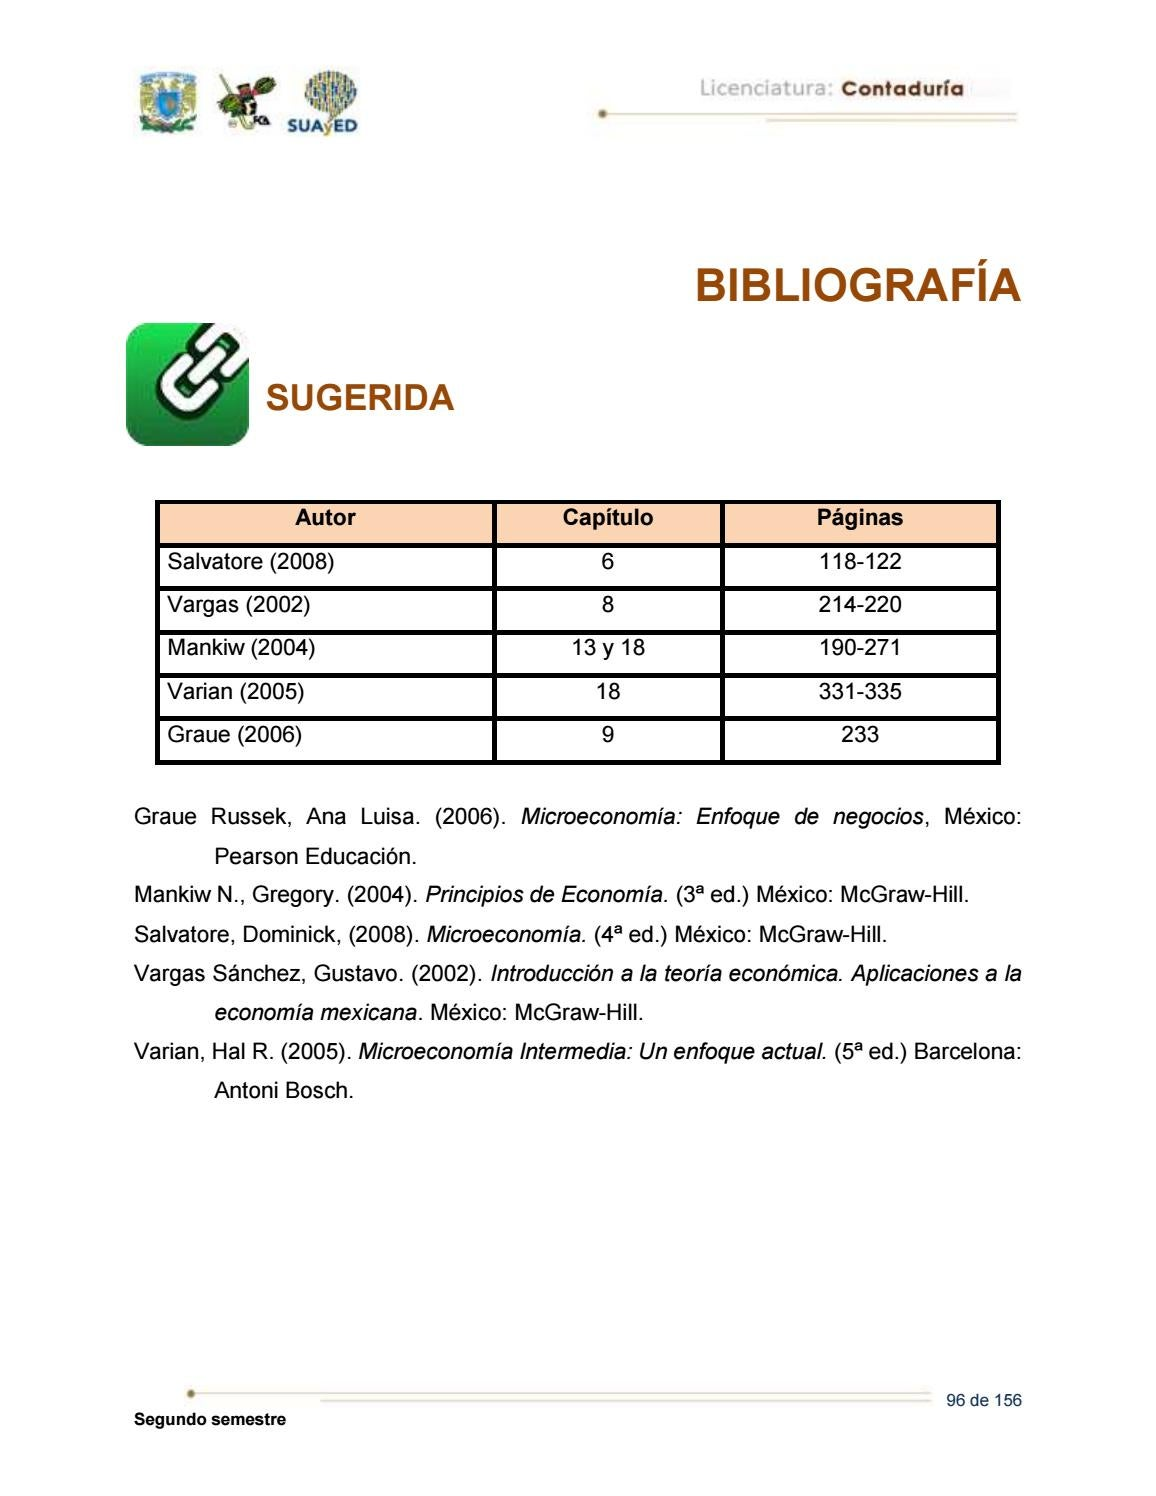 Intermedia download microeconomia varian